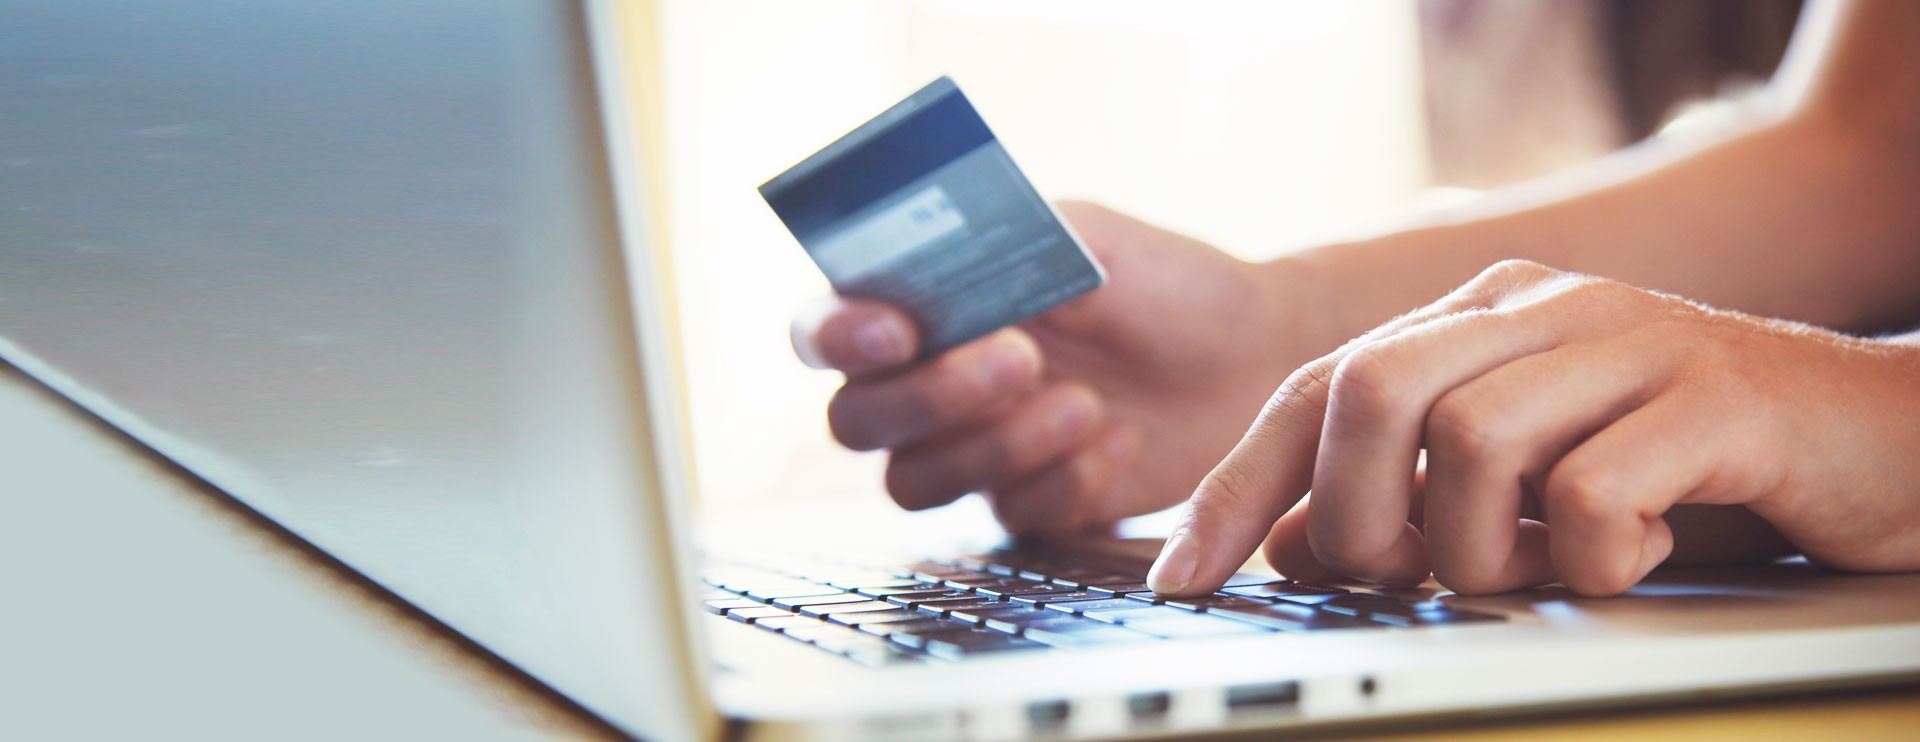 hand holds a credit card in front of a laptop